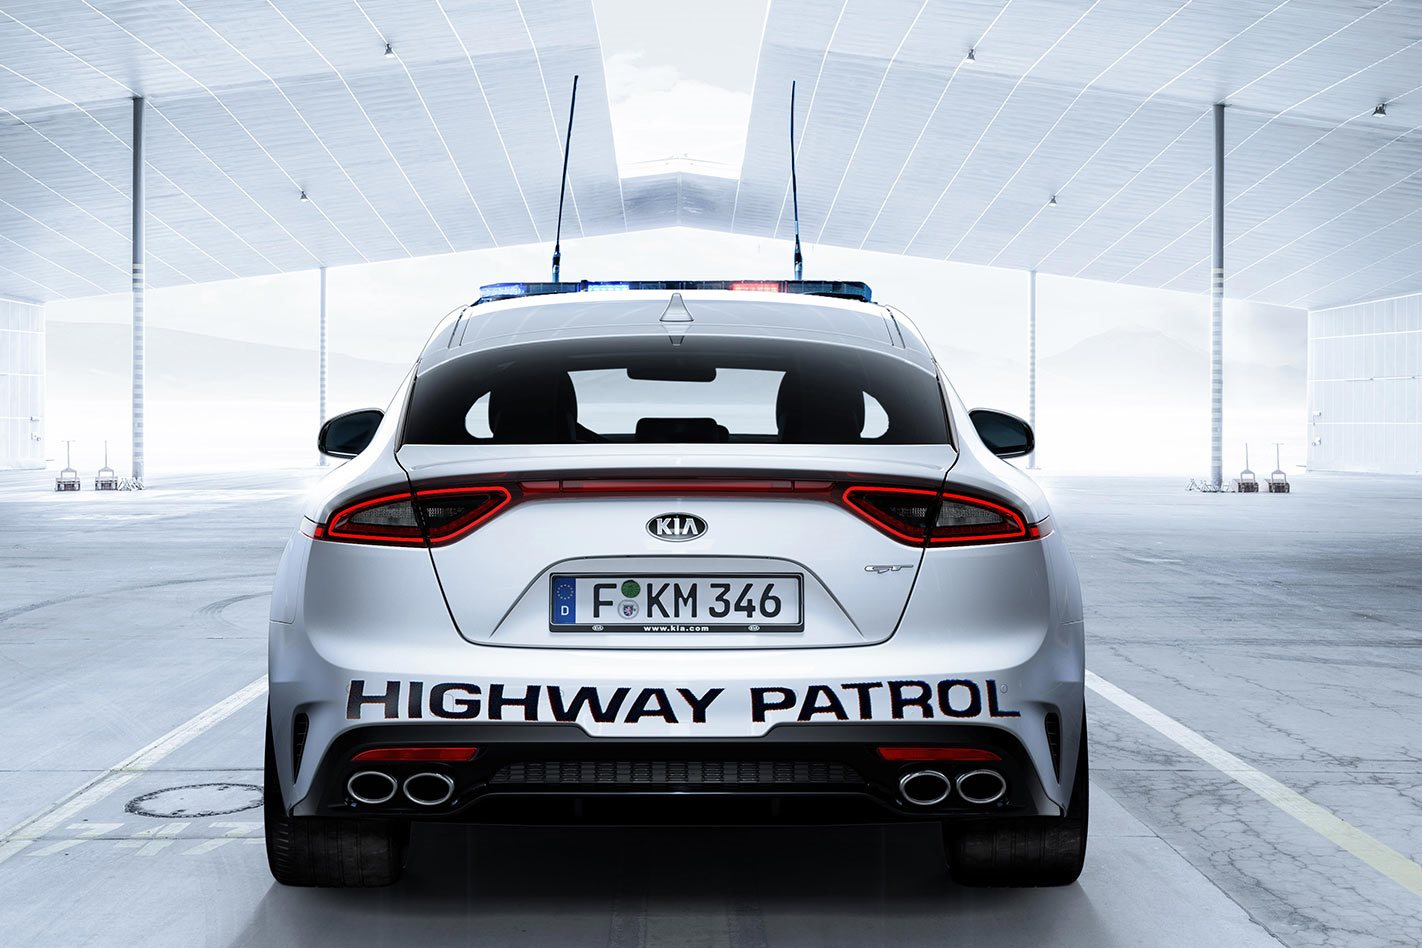 Kia Stinger GT Highway Patrol car rear